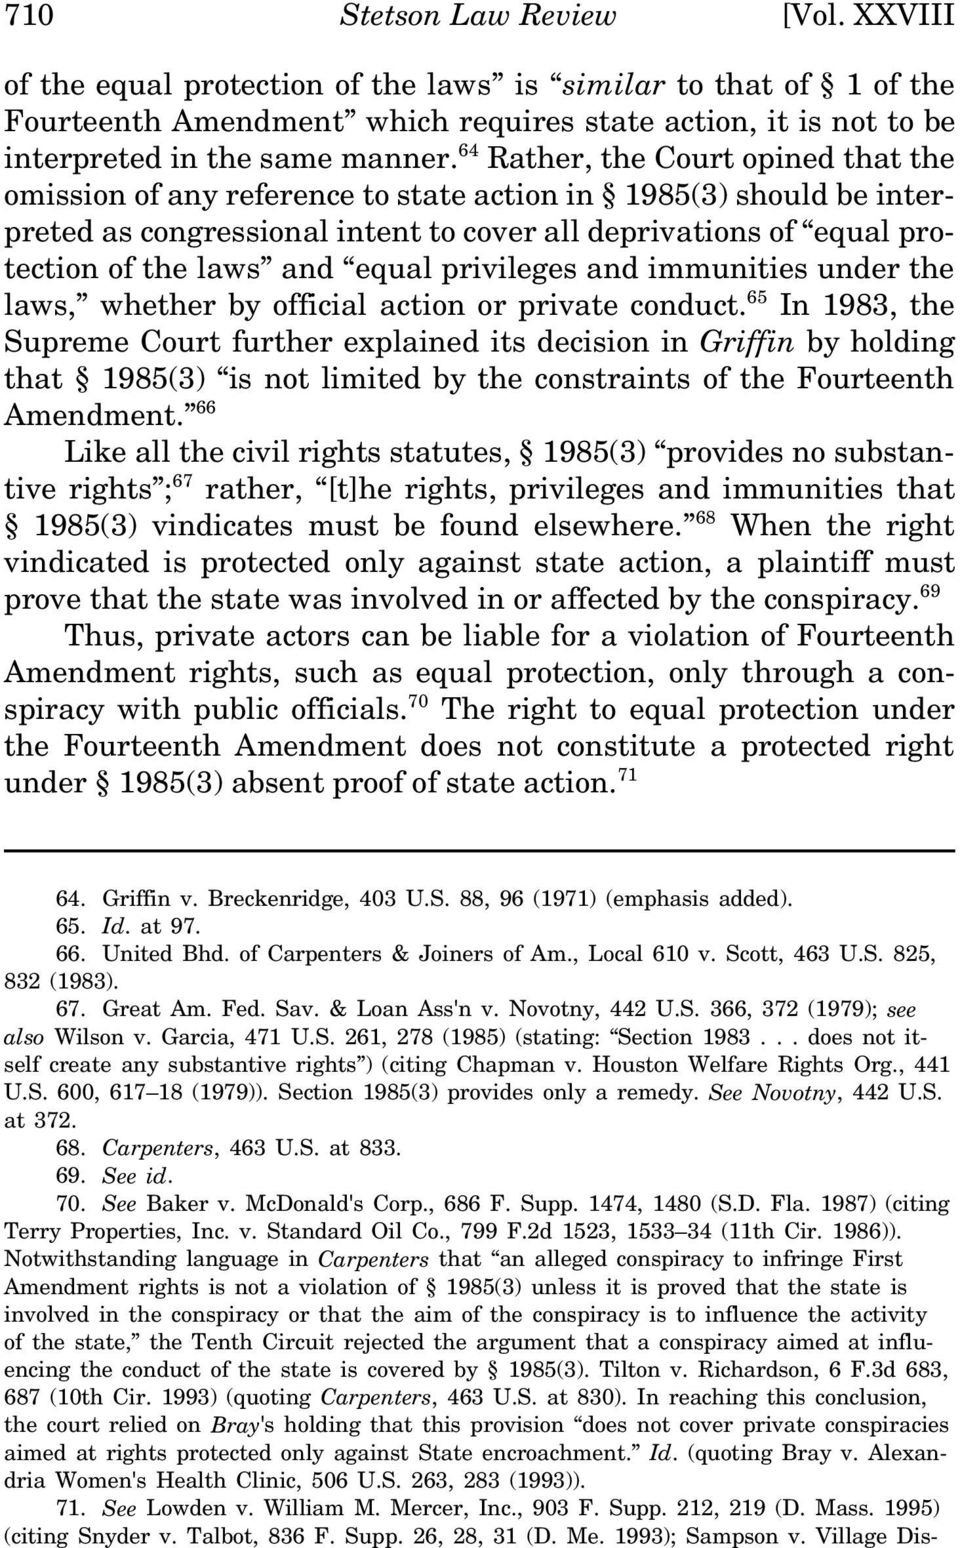 .. does not itself create any substantive rights ) (citing Chapman v. Houston Welfare Rights Org., 441 U.S. 600, 617 18 (1979)). Section 1985(3) provides only a remedy. See Novotny, 442 U.S. at 372.